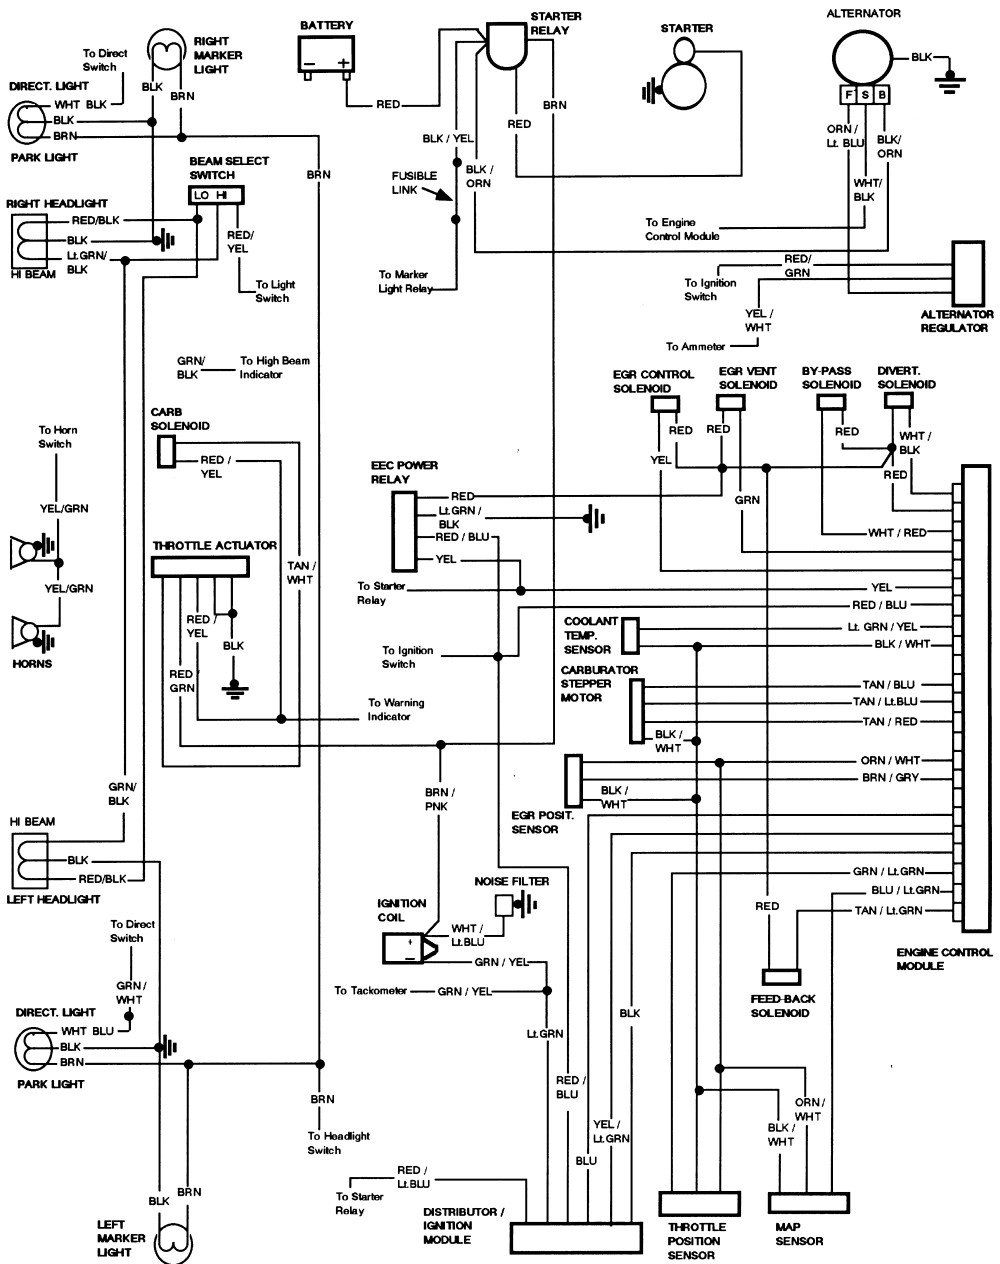 [DIAGRAM_3ER]  Ford F350 Wiring Diagram Free – Wiring Diagram Collection for Ford F350  Wiring Diagram Free | Ford truck, Ford f150, Ford f250 | Ford Truck Wire Diagram F 350 Diesel 94 |  | Pinterest